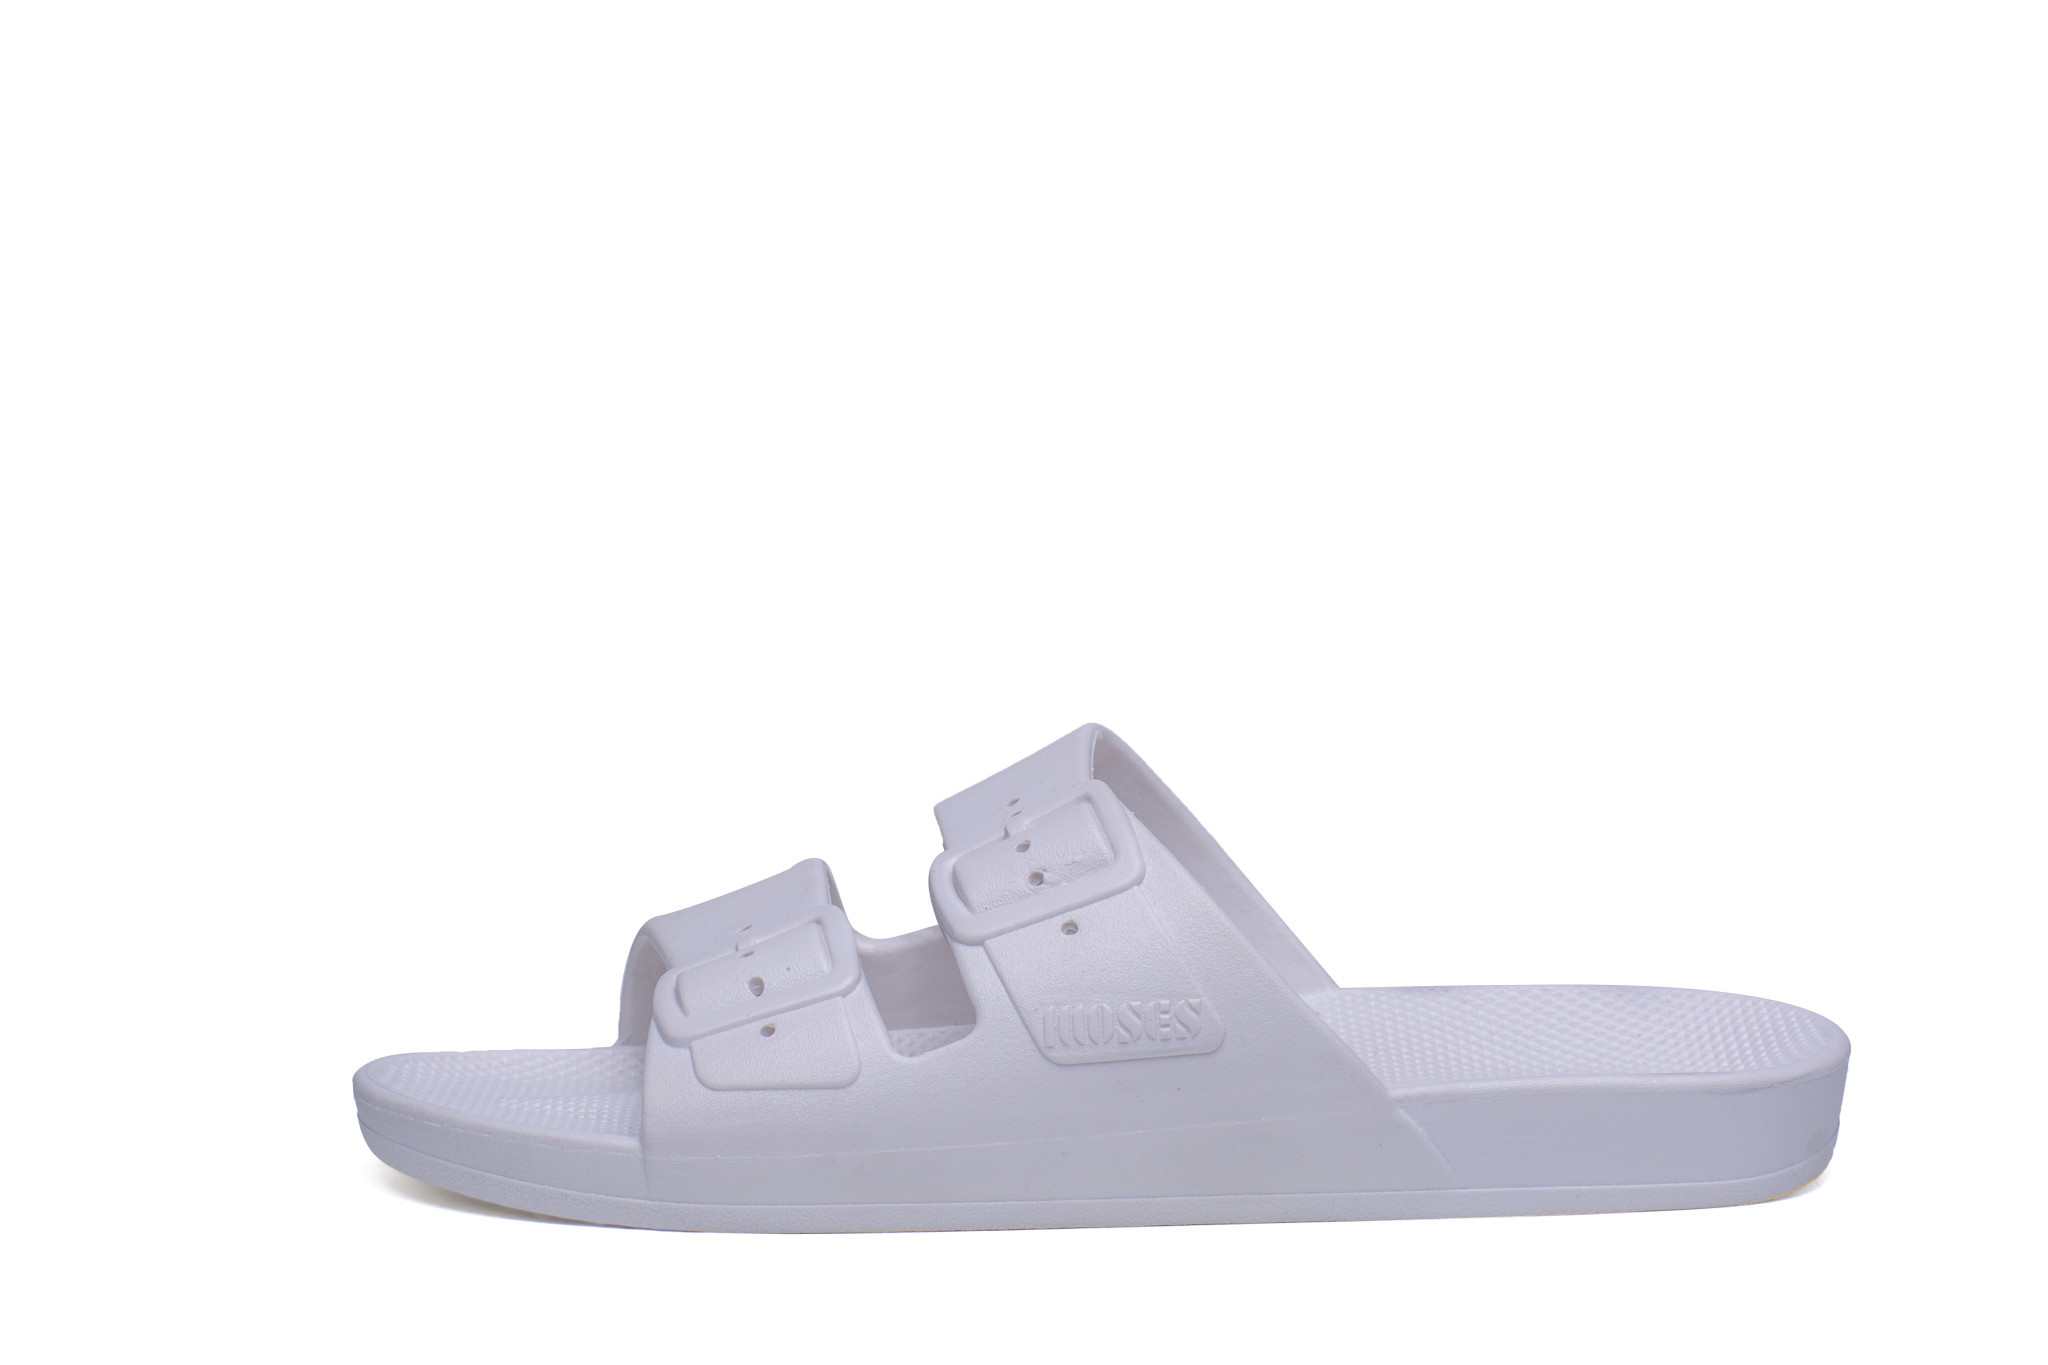 Freedom MOSES Sandales Classiques Blanches